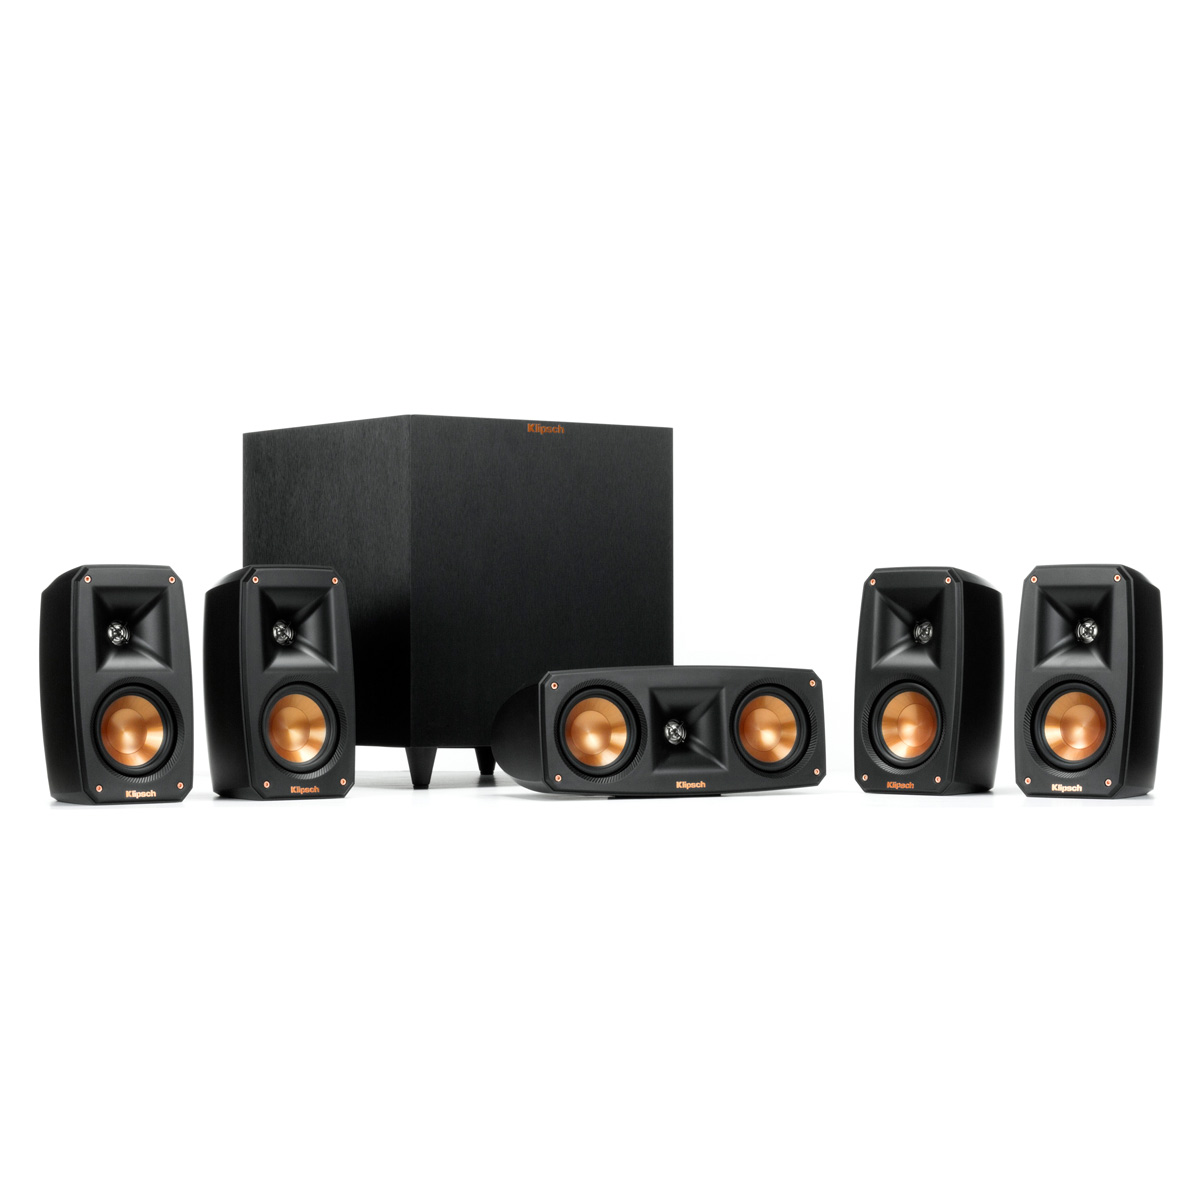 Klipsch Reference 5.1 Theater System with Satellite Speakers, Center Speaker, and Subwoofer (Black) by Klipsch